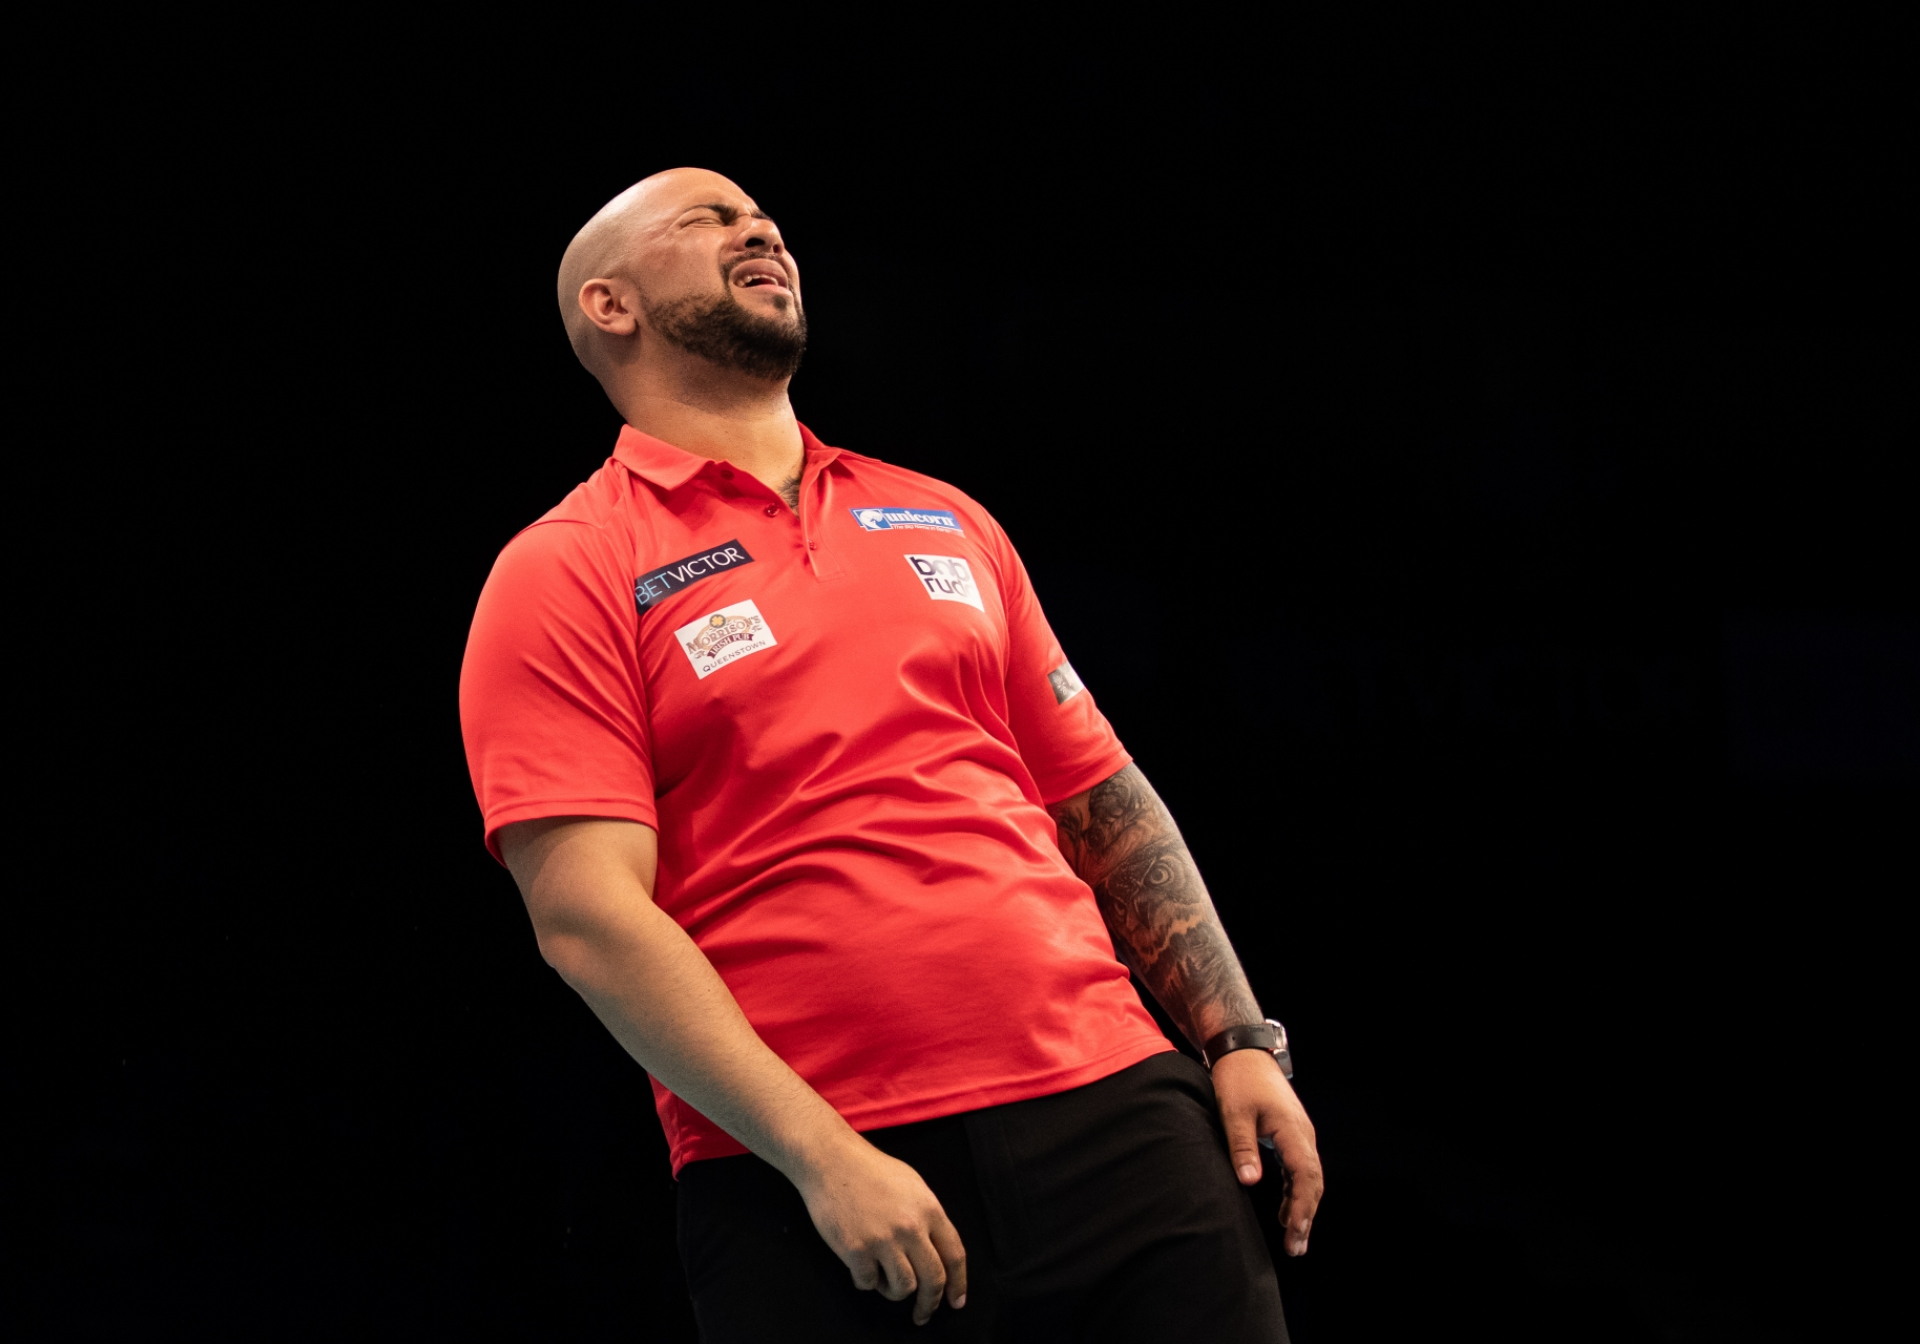 South Africa's Devon Petersen - BetVictor World Cup of Darts (Stefan Strassenberg)